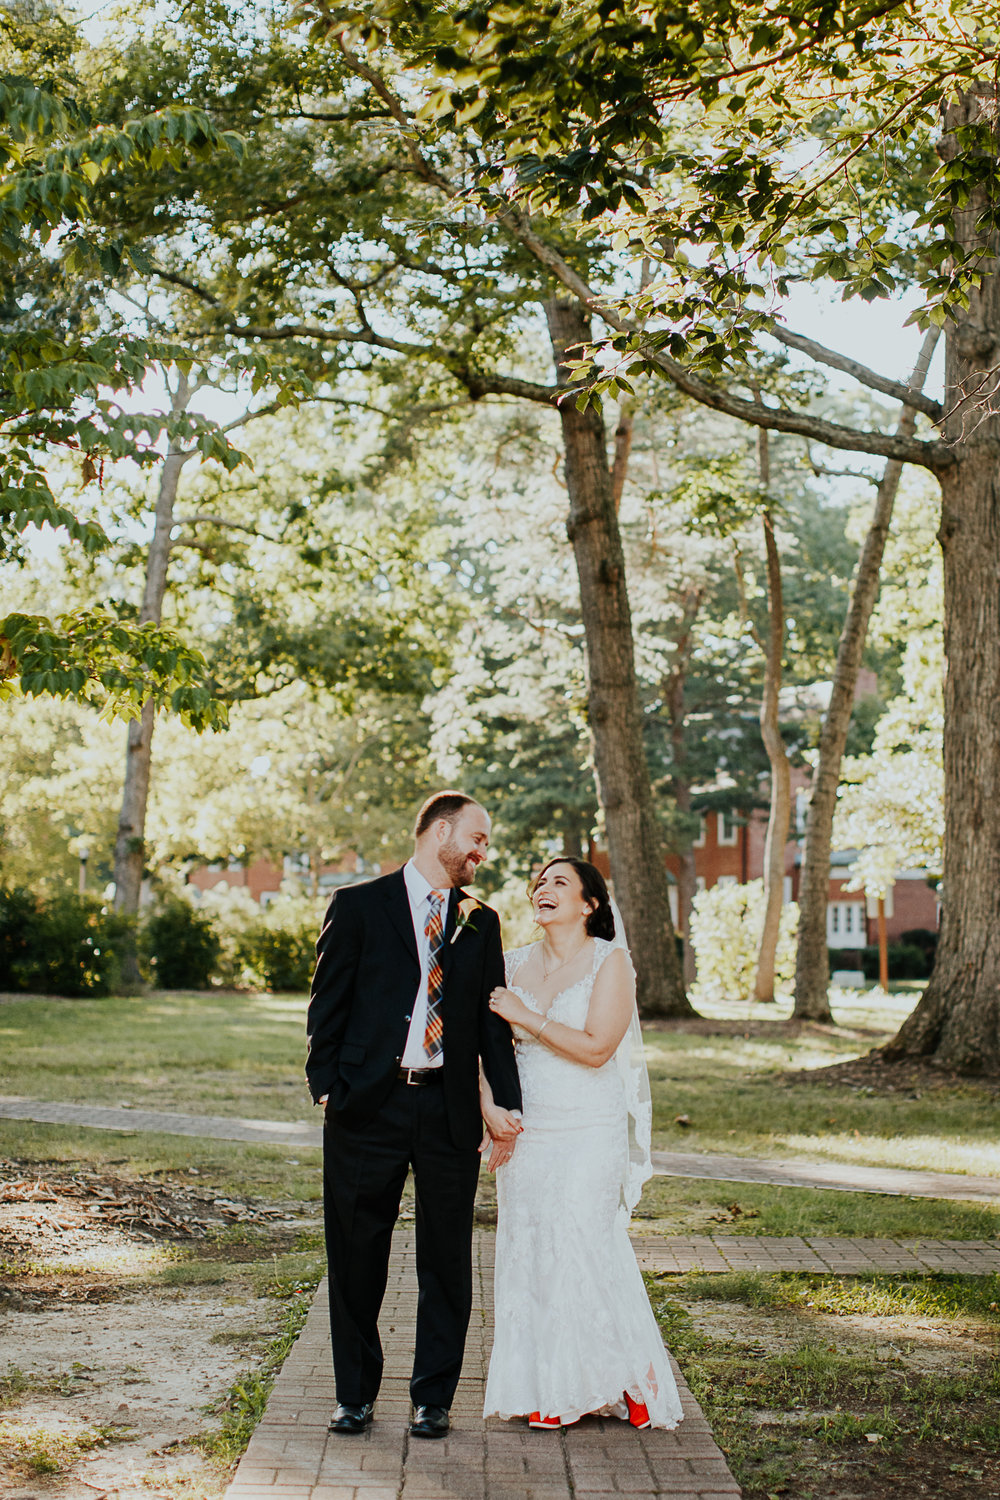 darcy_troutman_photography (11 of 22).jpg